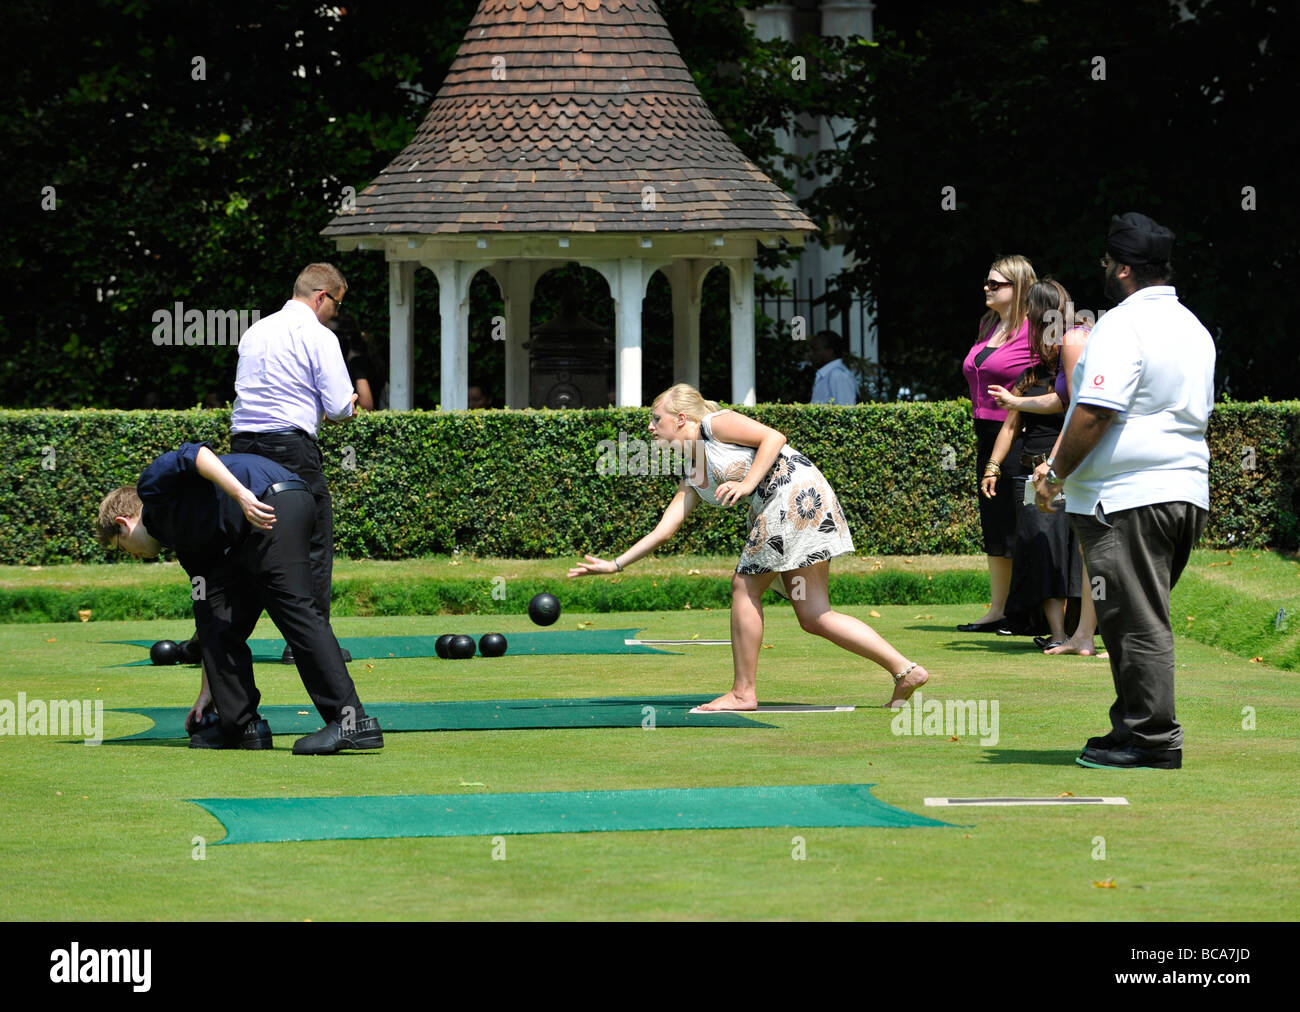 City of London workers take to the outside spaces during their lunch break in the heatwave. Bowling in Finsbury - Stock Image